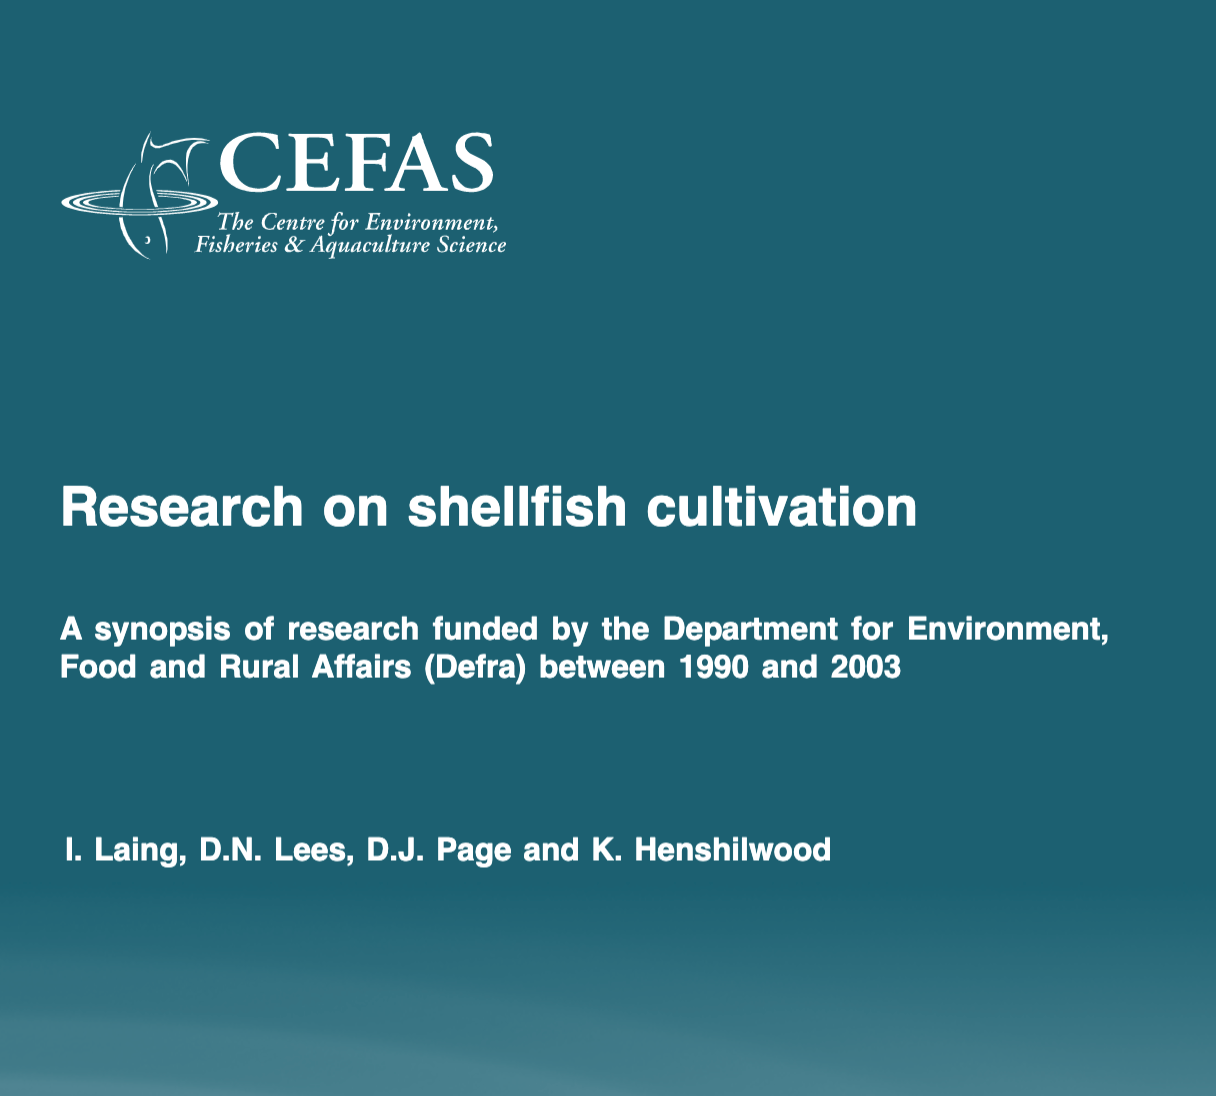 Research on shellfish cultivation